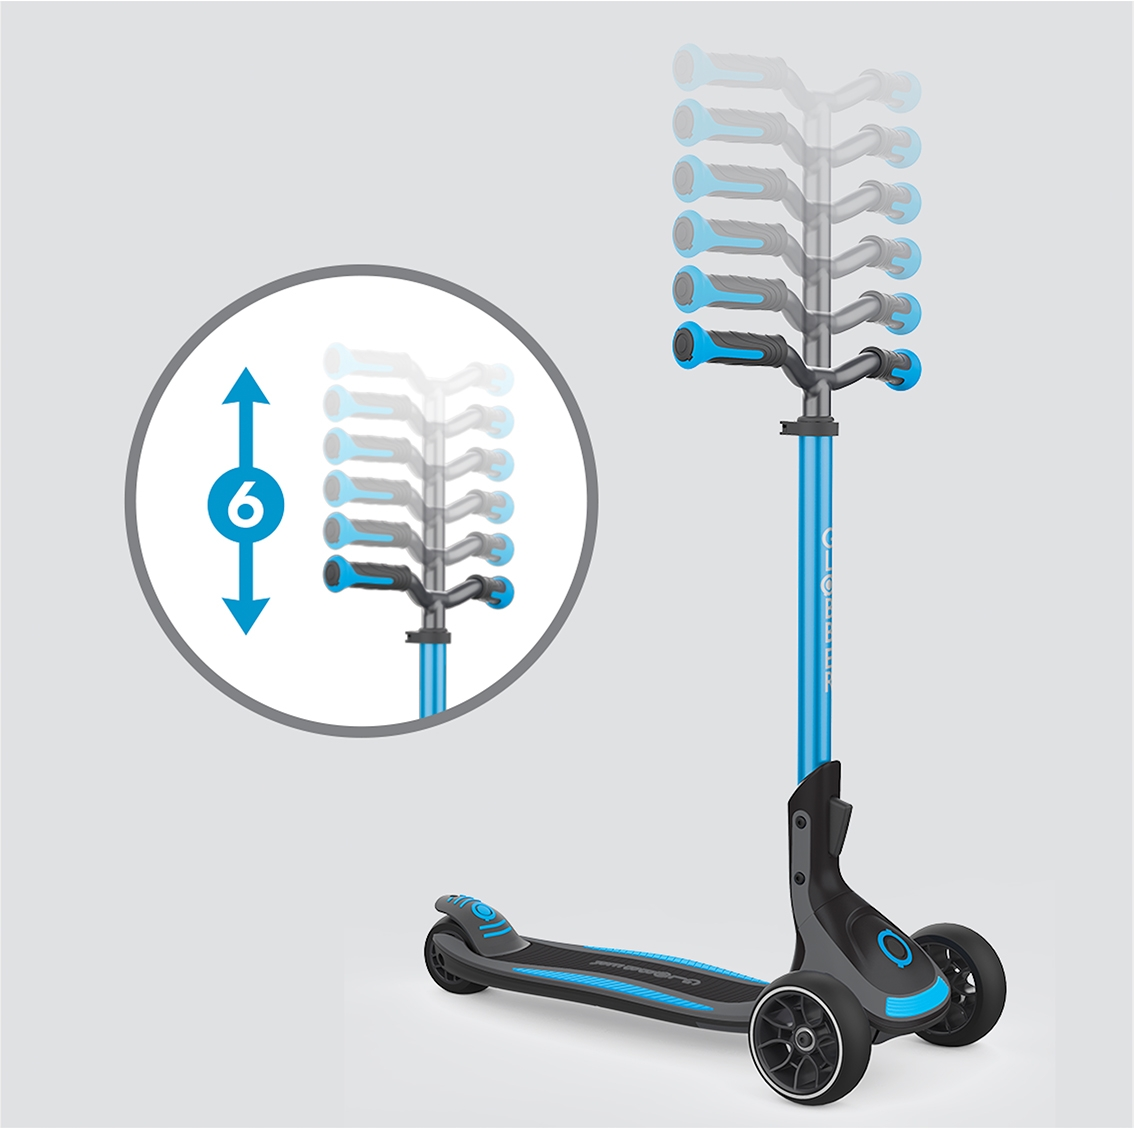 6-height adjustable T-bar